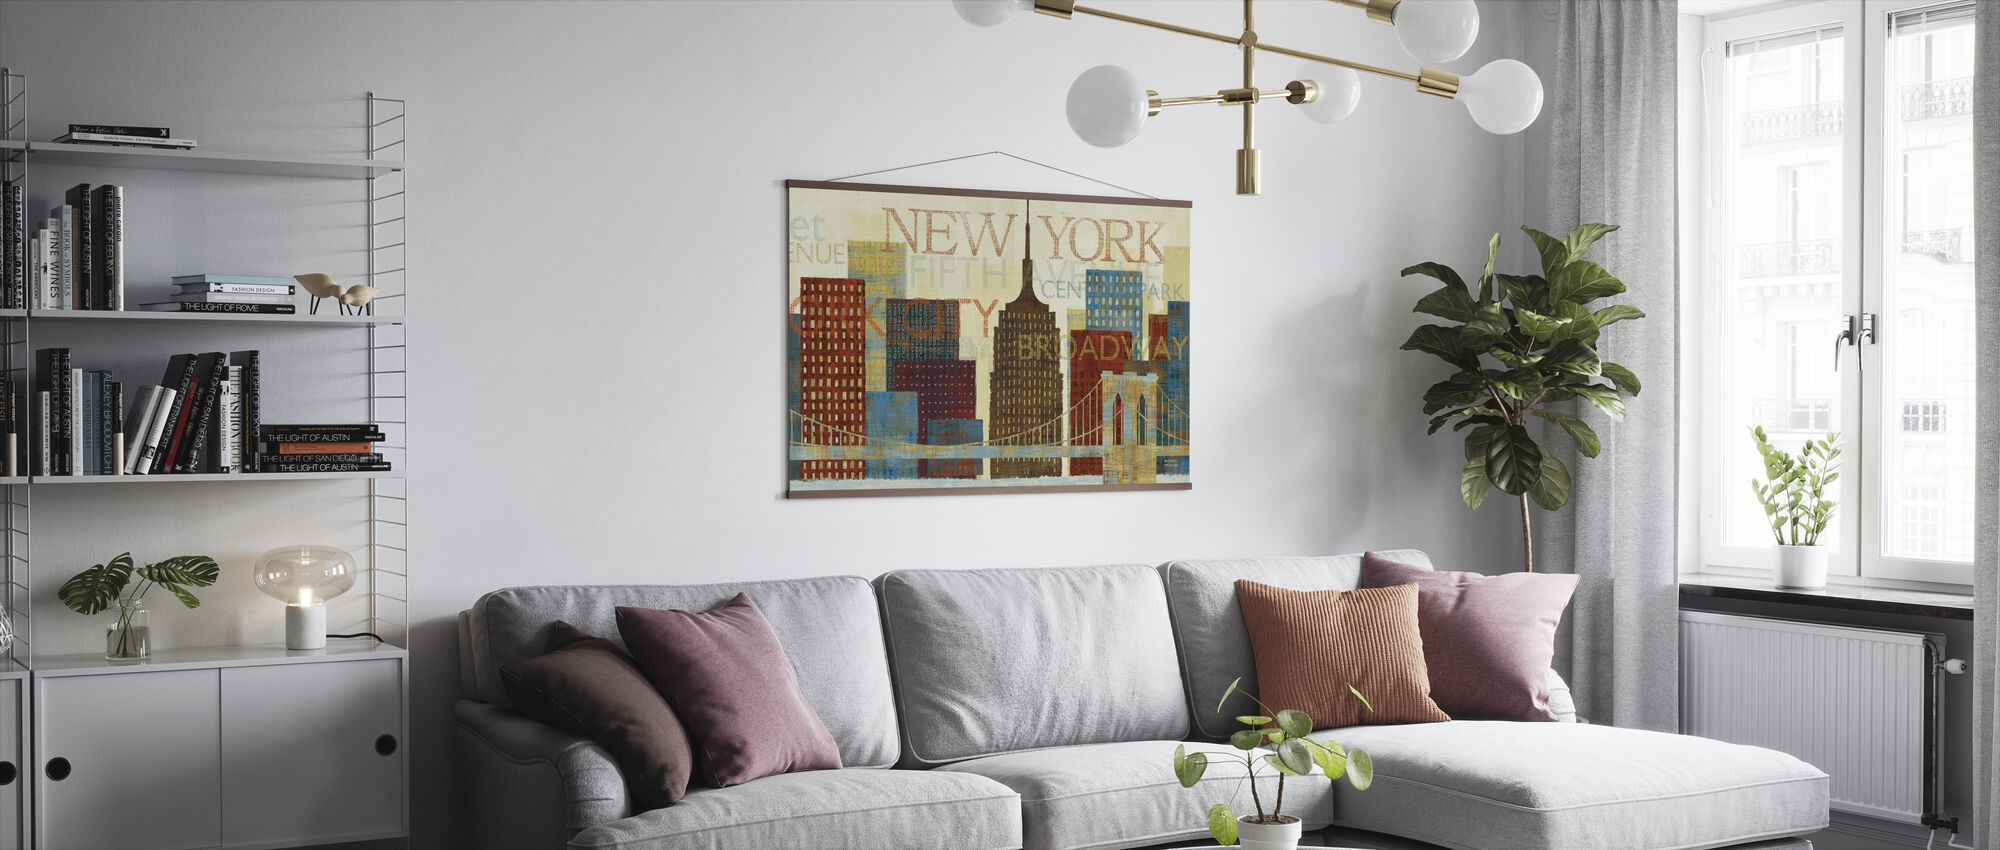 Hey New York - Poster - Living Room